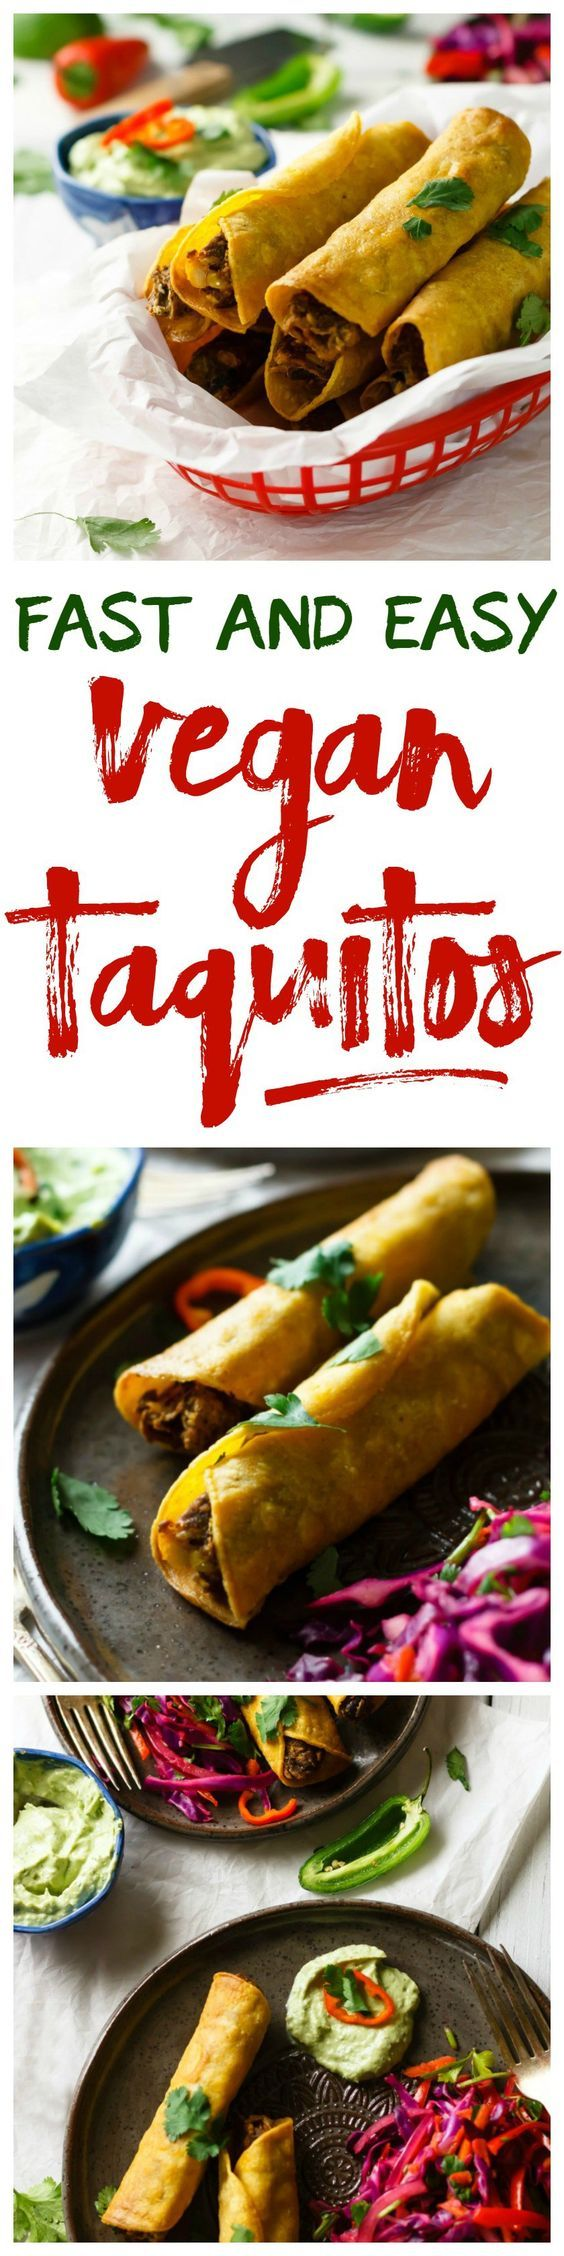 Just 3 ingredients!! Corn tortillas, cooking spray and Gardein Chipotle Black Bean Veggie Burgers are all you need to get golden, crispy taquitos on the table quick and easy. Plus get a $1 off Gardein coupon! #OMGardein